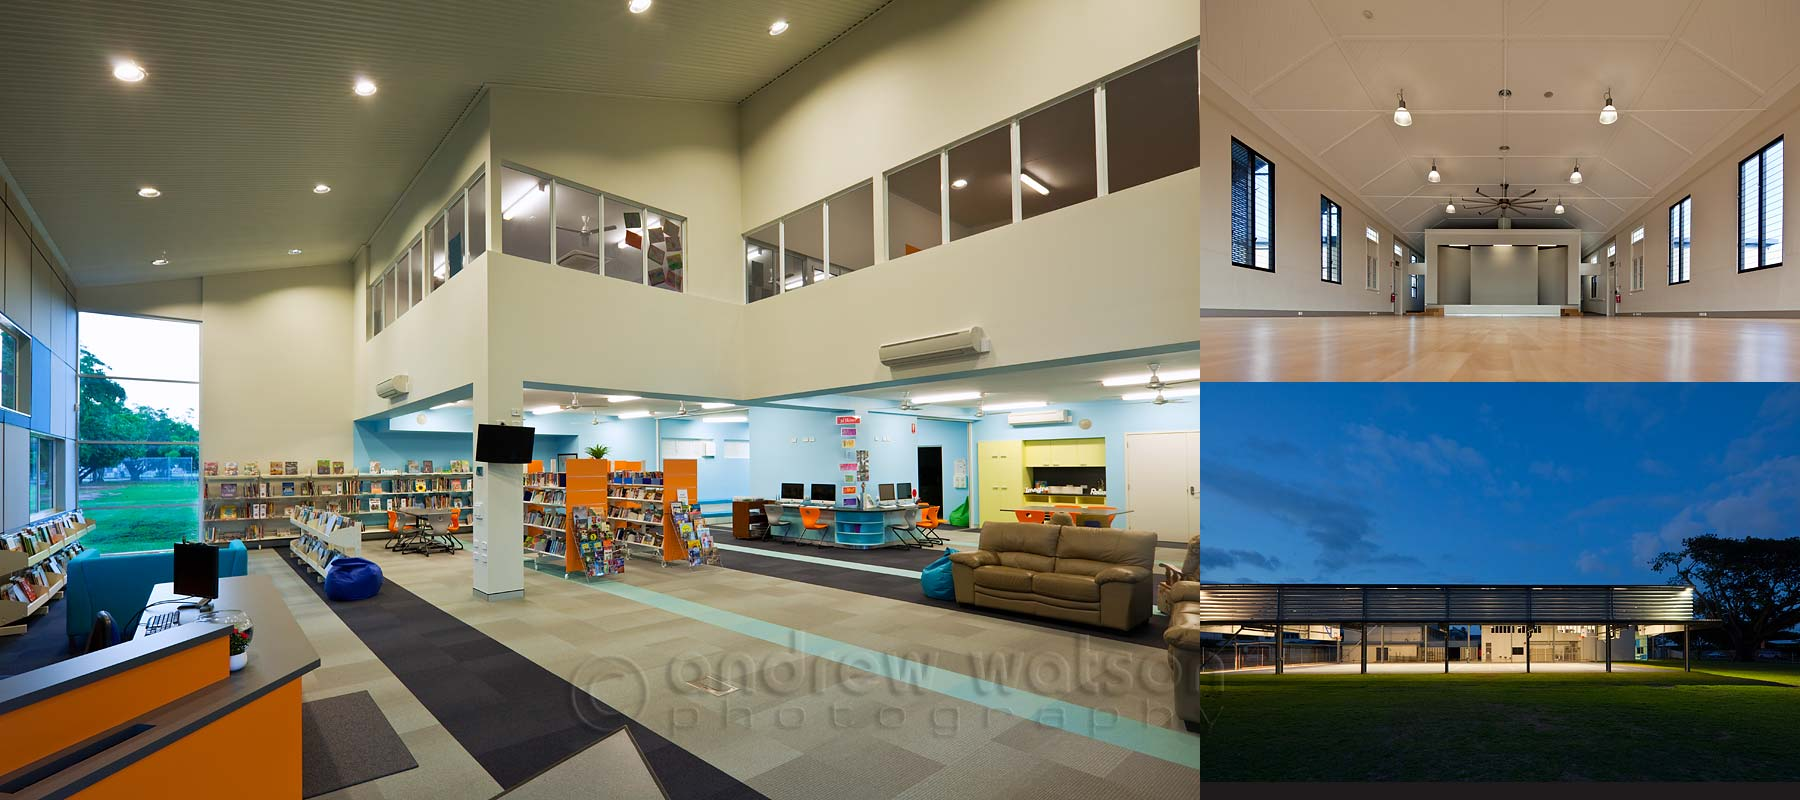 Architecture photography - Mother of Good Counsel School, Cairns